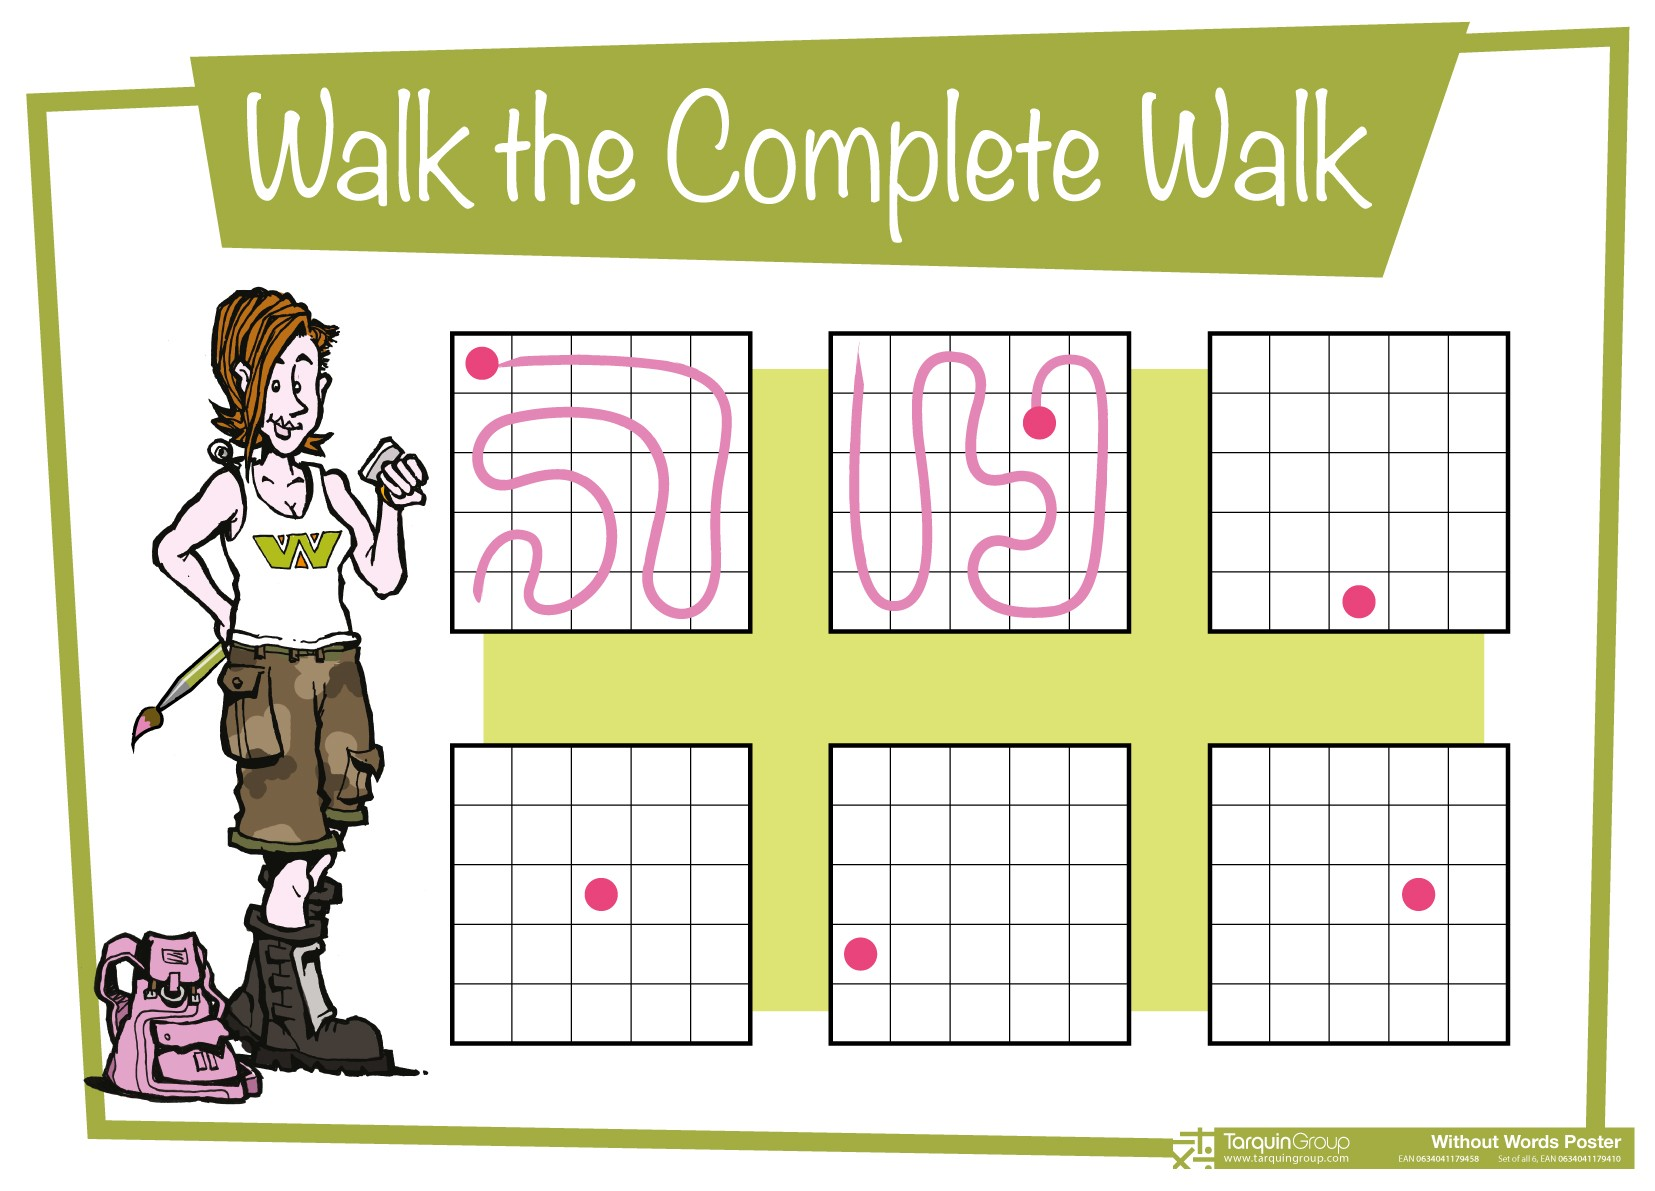 Walk the Complete Walk Poster